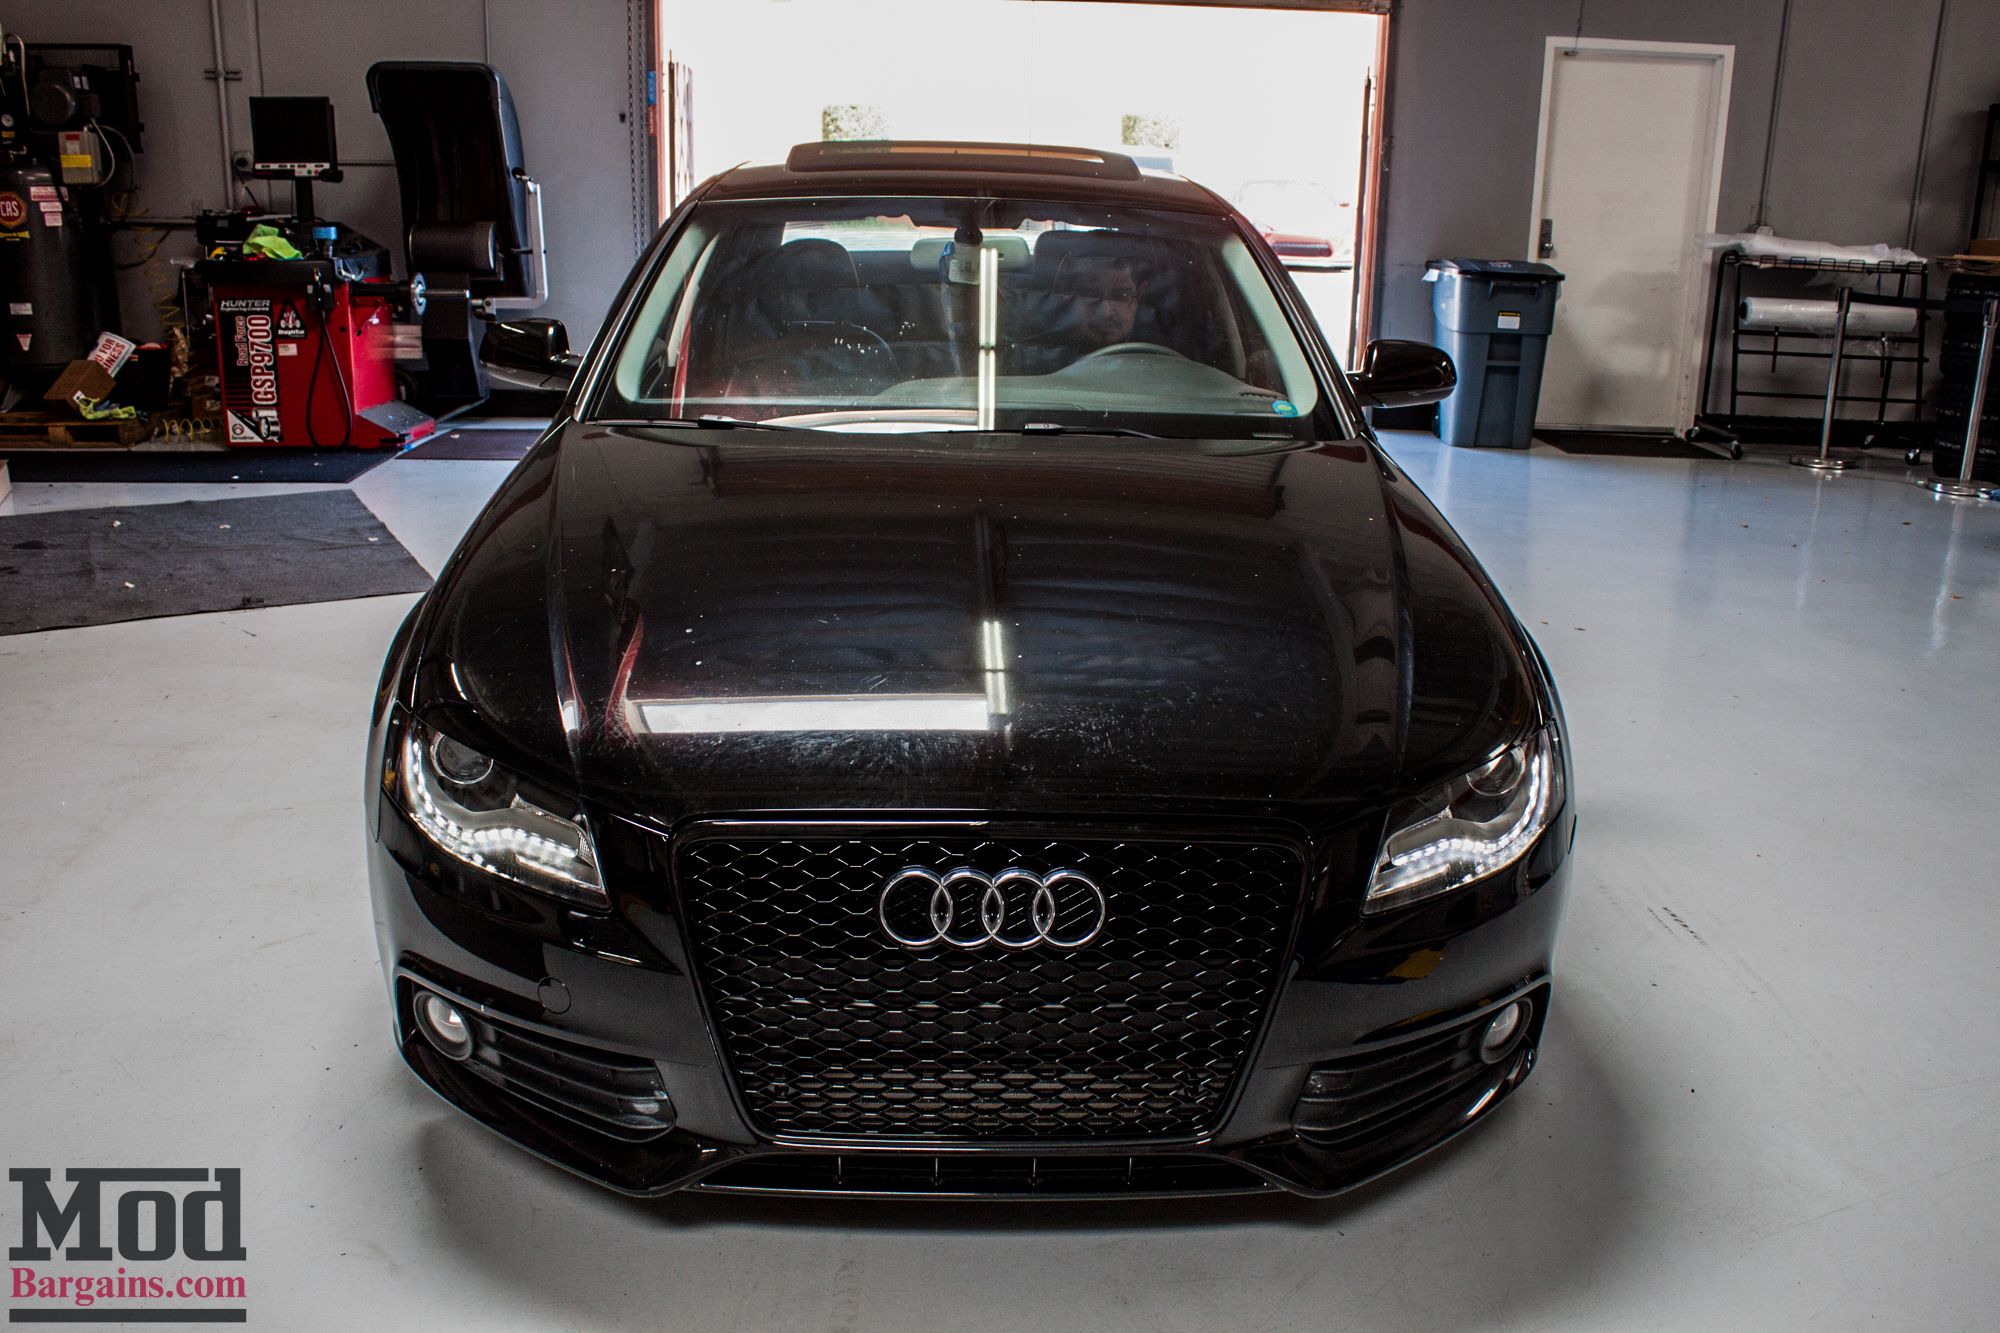 quick snap blacked out b8 audi a4 on solo werks coilovers vmr v701s gets rs4 grille. Black Bedroom Furniture Sets. Home Design Ideas